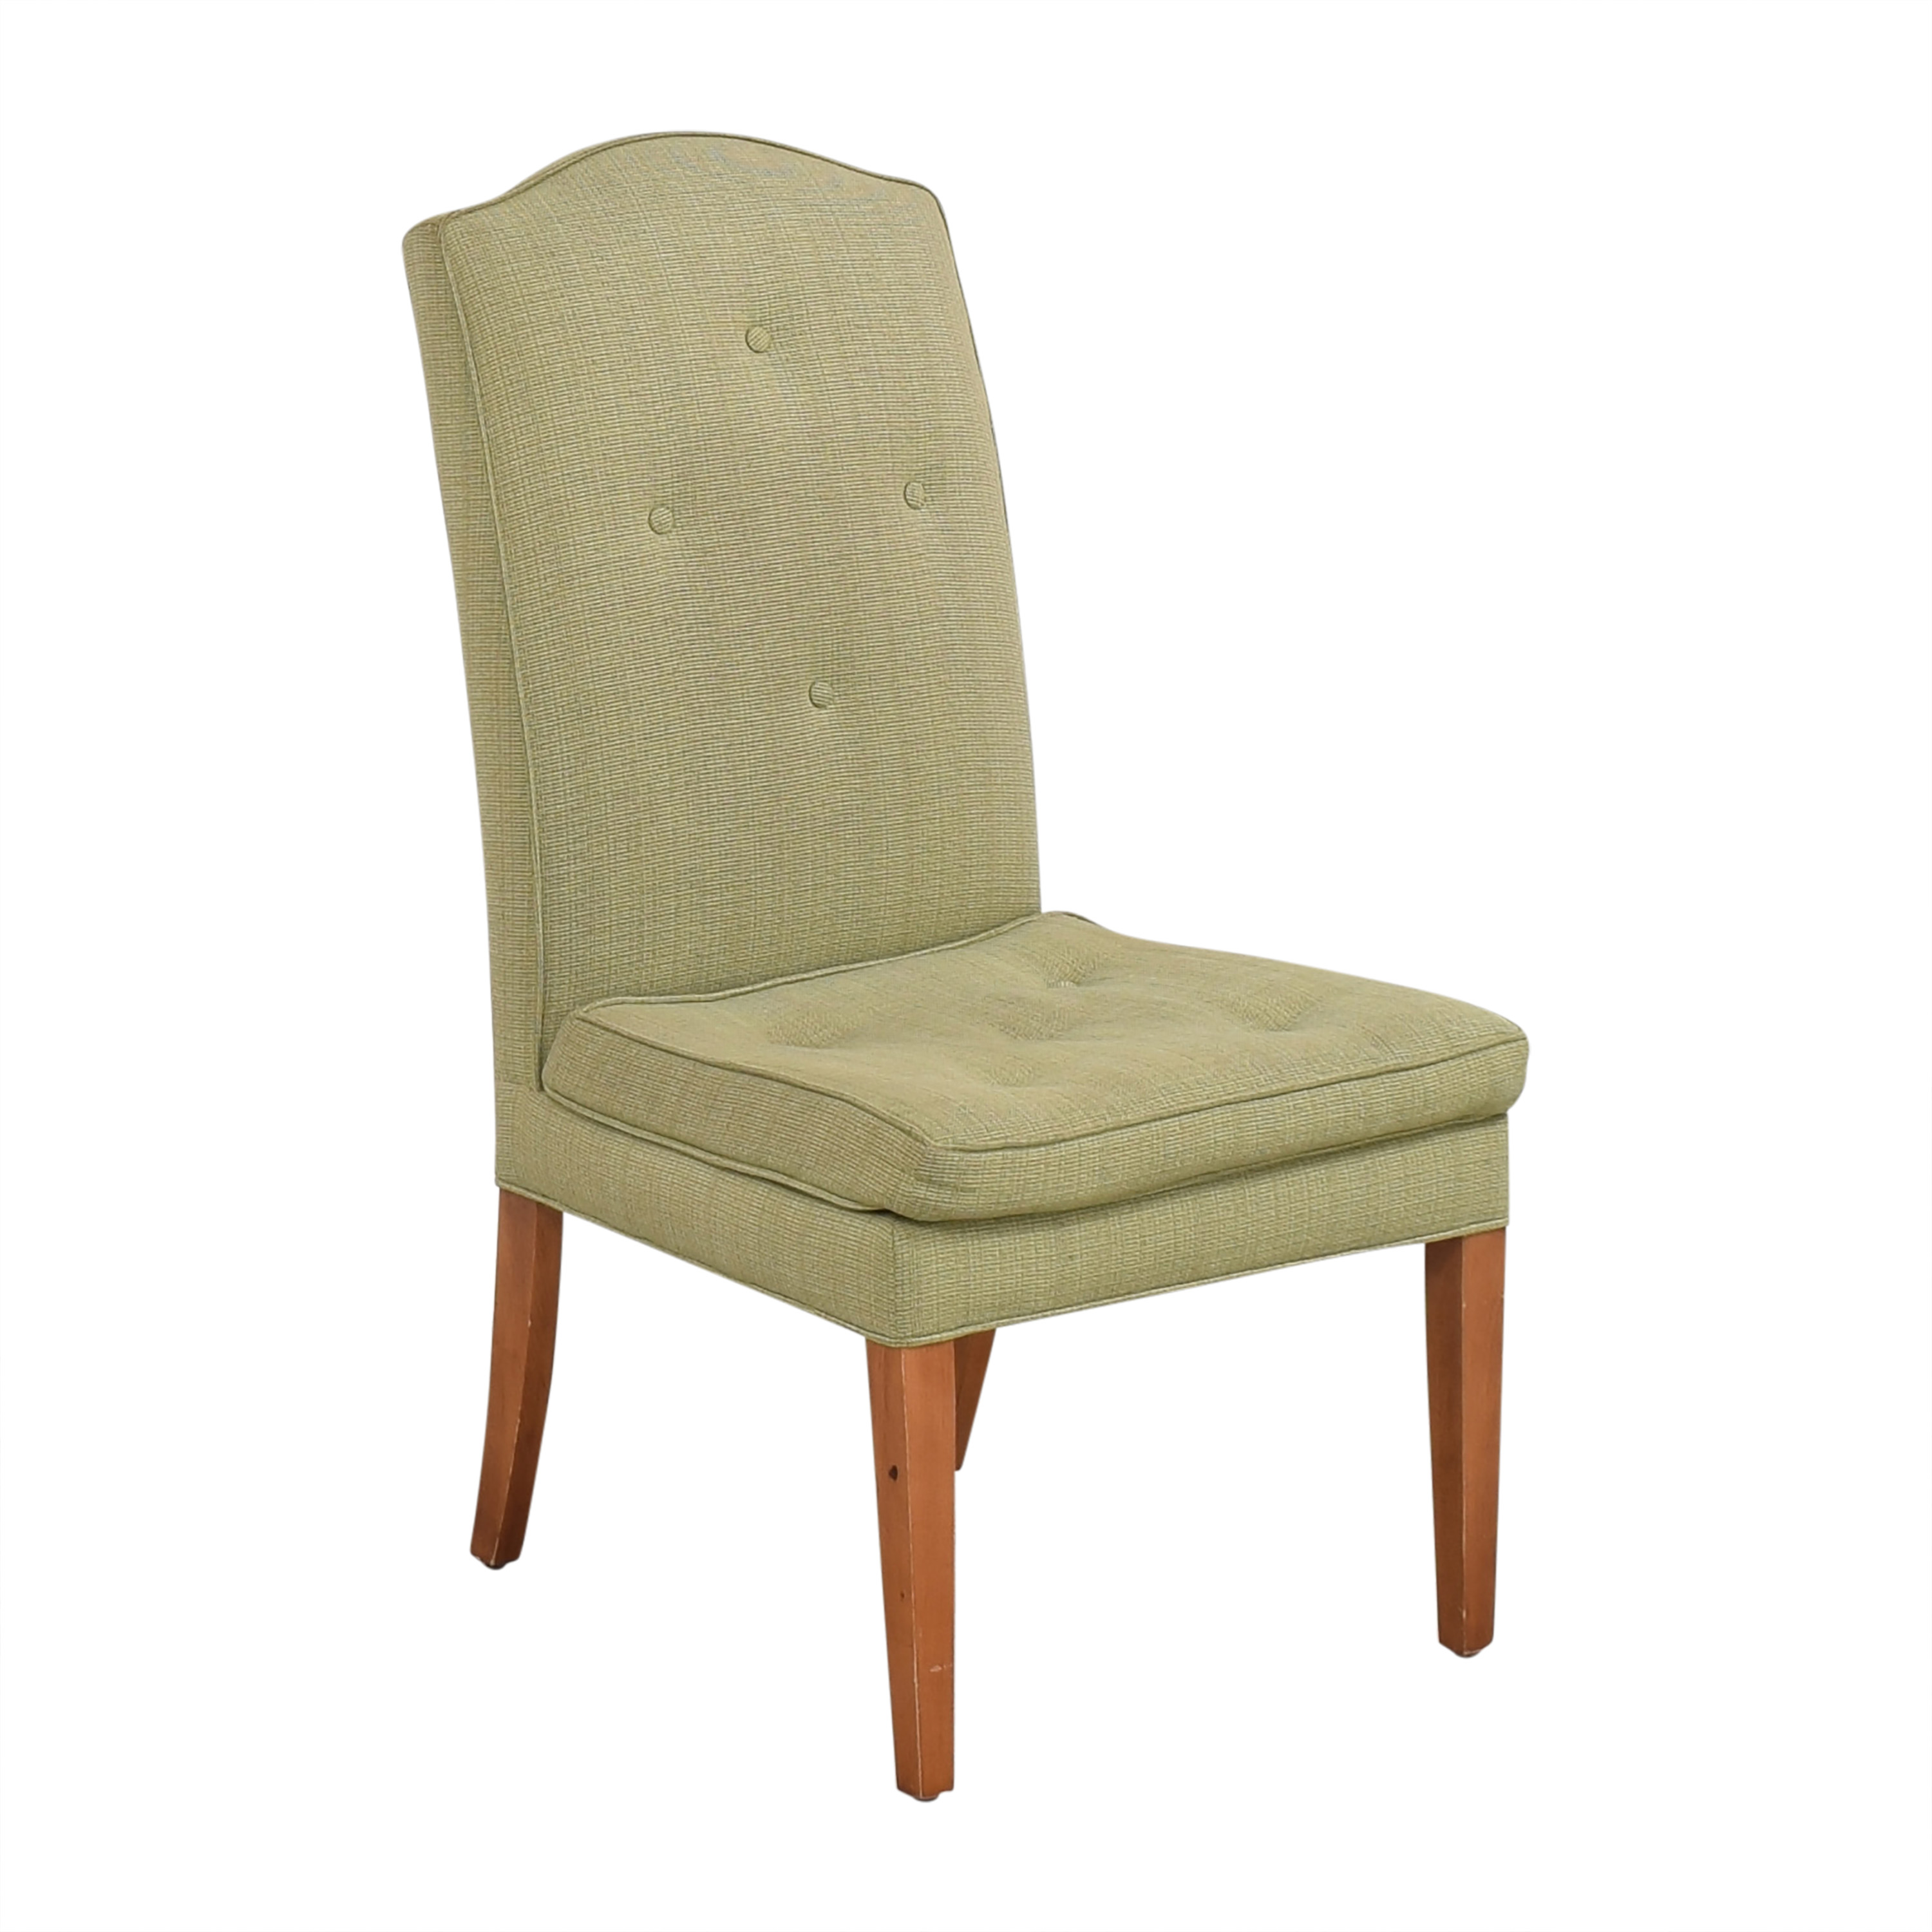 shop Custom Upholstered High Back Chair   Chairs